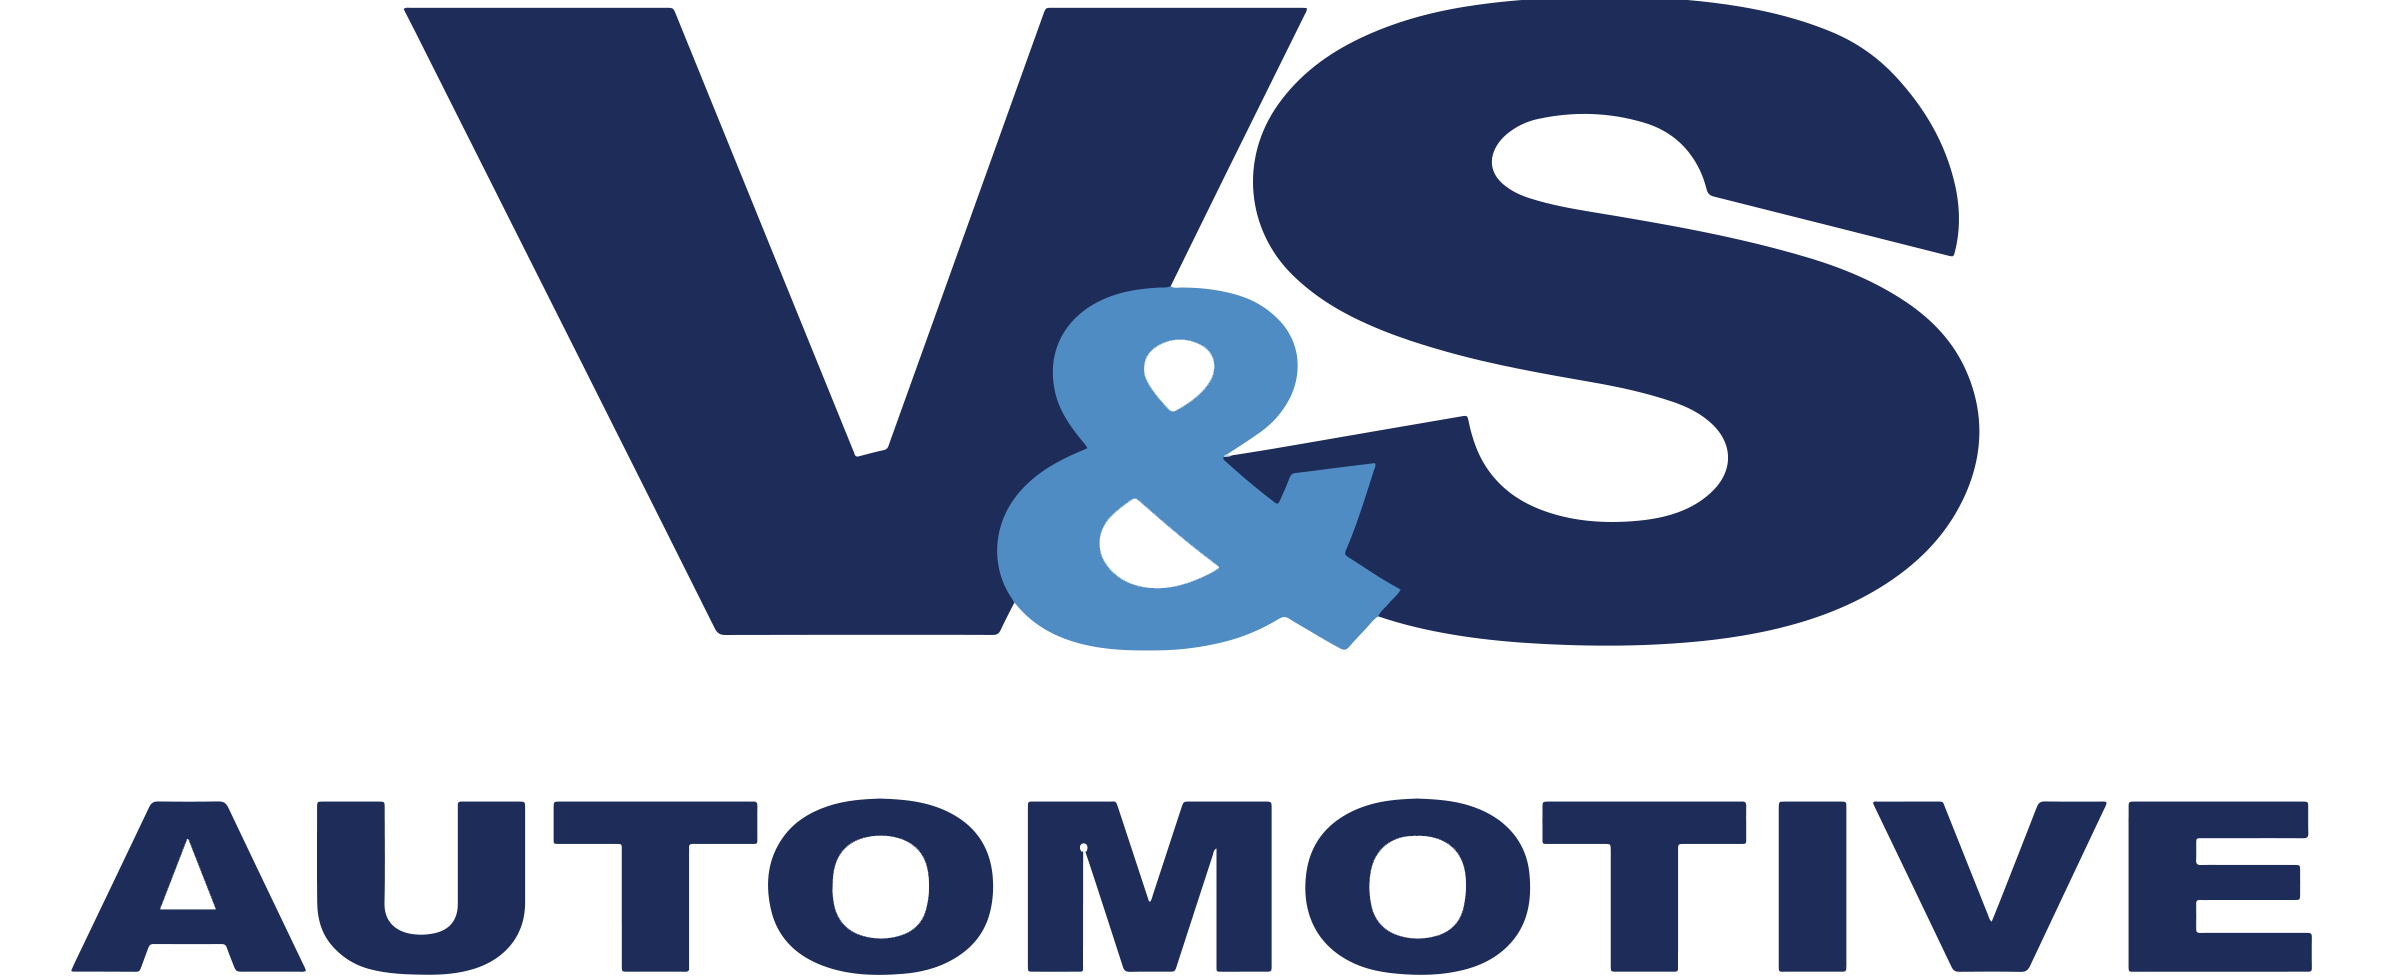 V&S Automotive logo